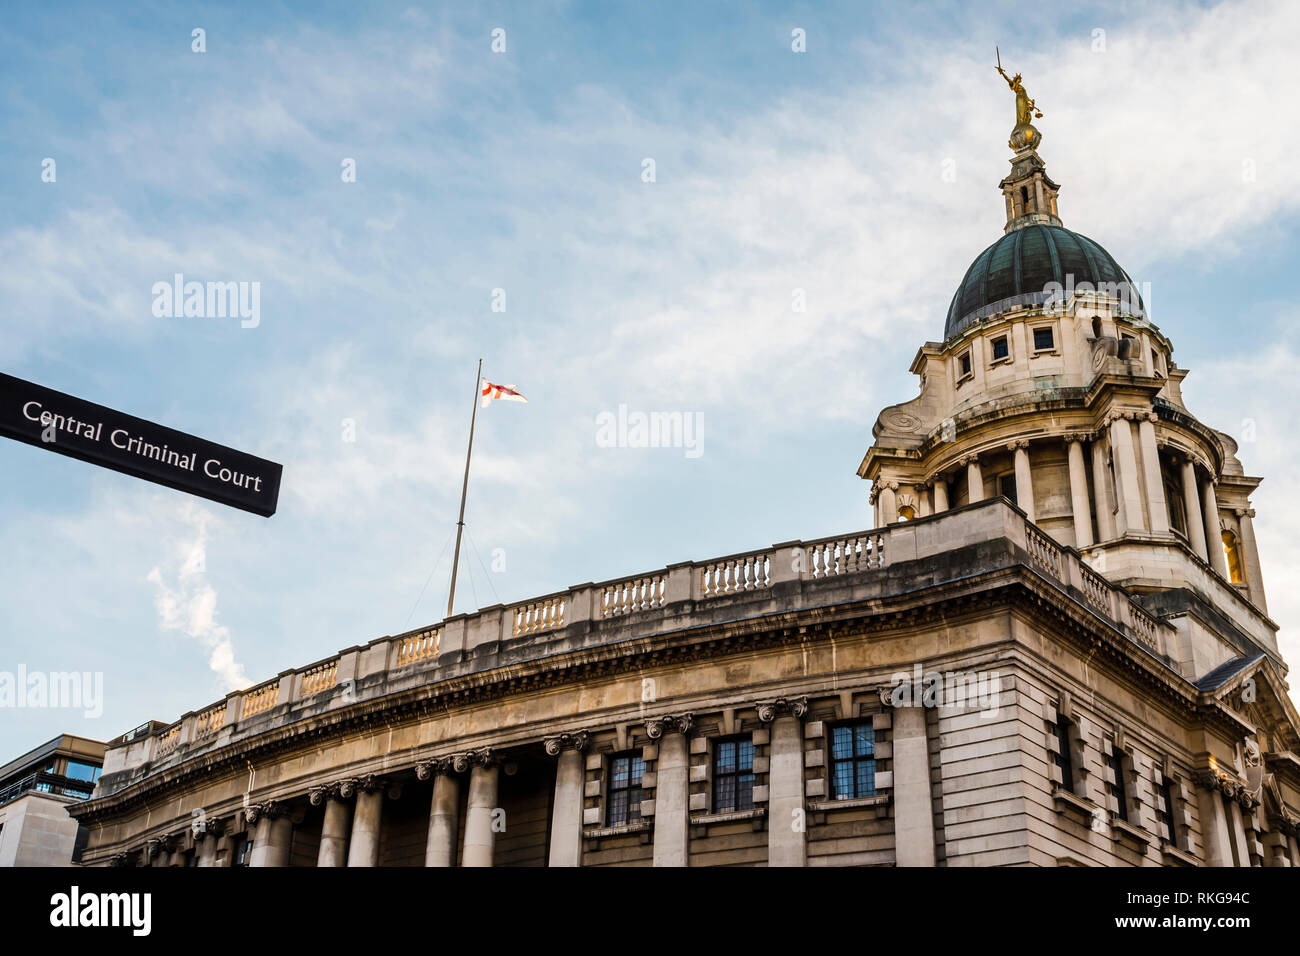 Sign pointing towards the Central Criminal Court, Old Bailey, London, UK - Stock Image